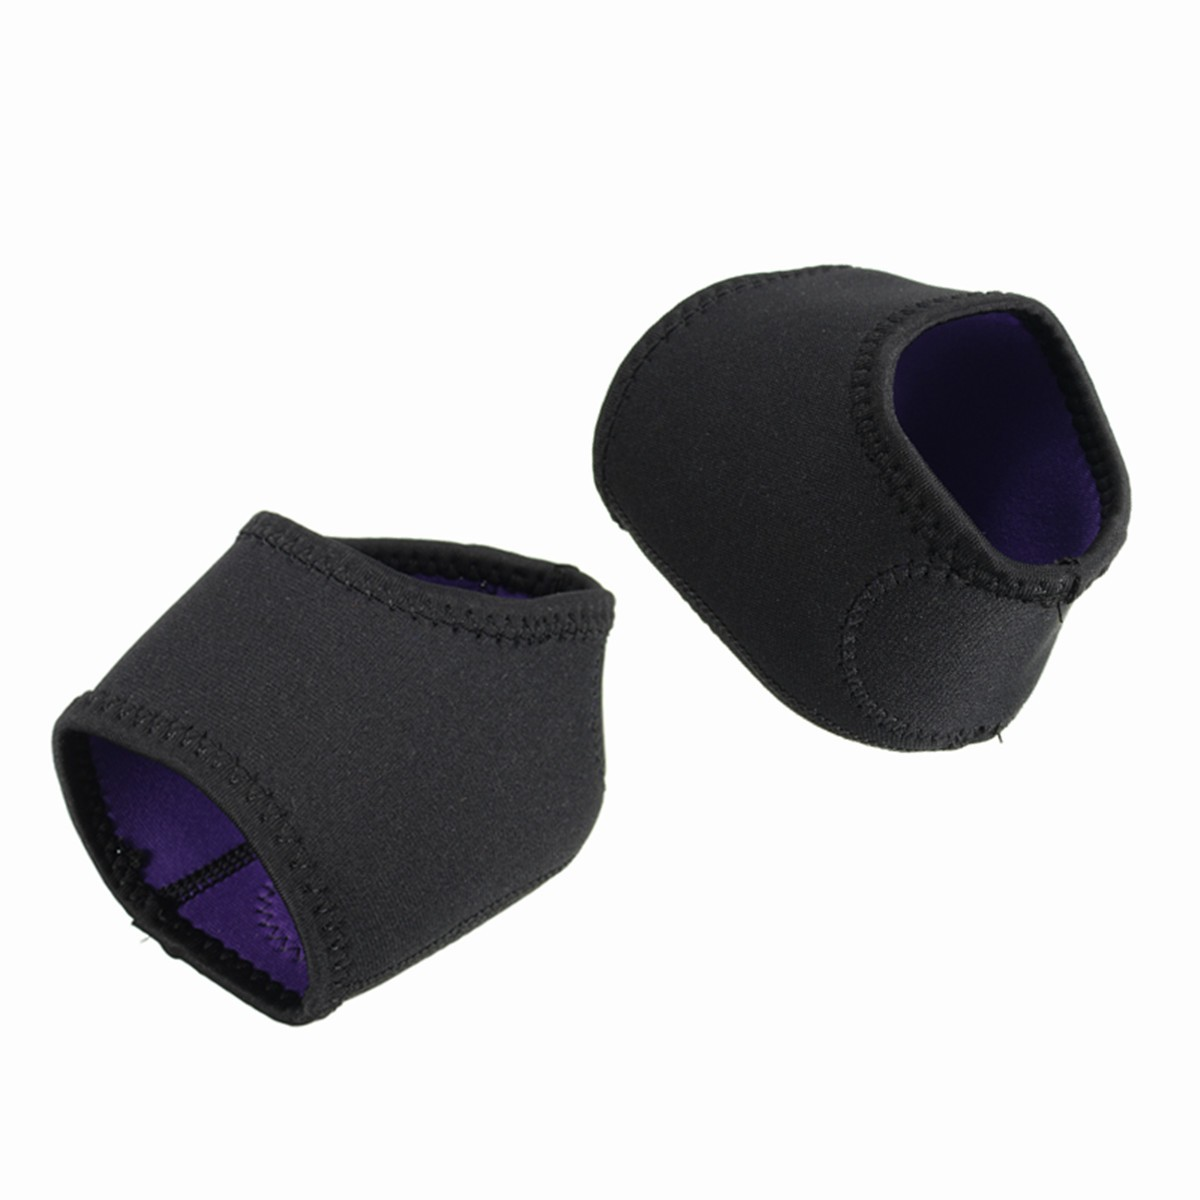 1 Pair Plantar Fasciitis Therapy Wrap Arch Support Pain Relieve Foot Heel Ankle Pad